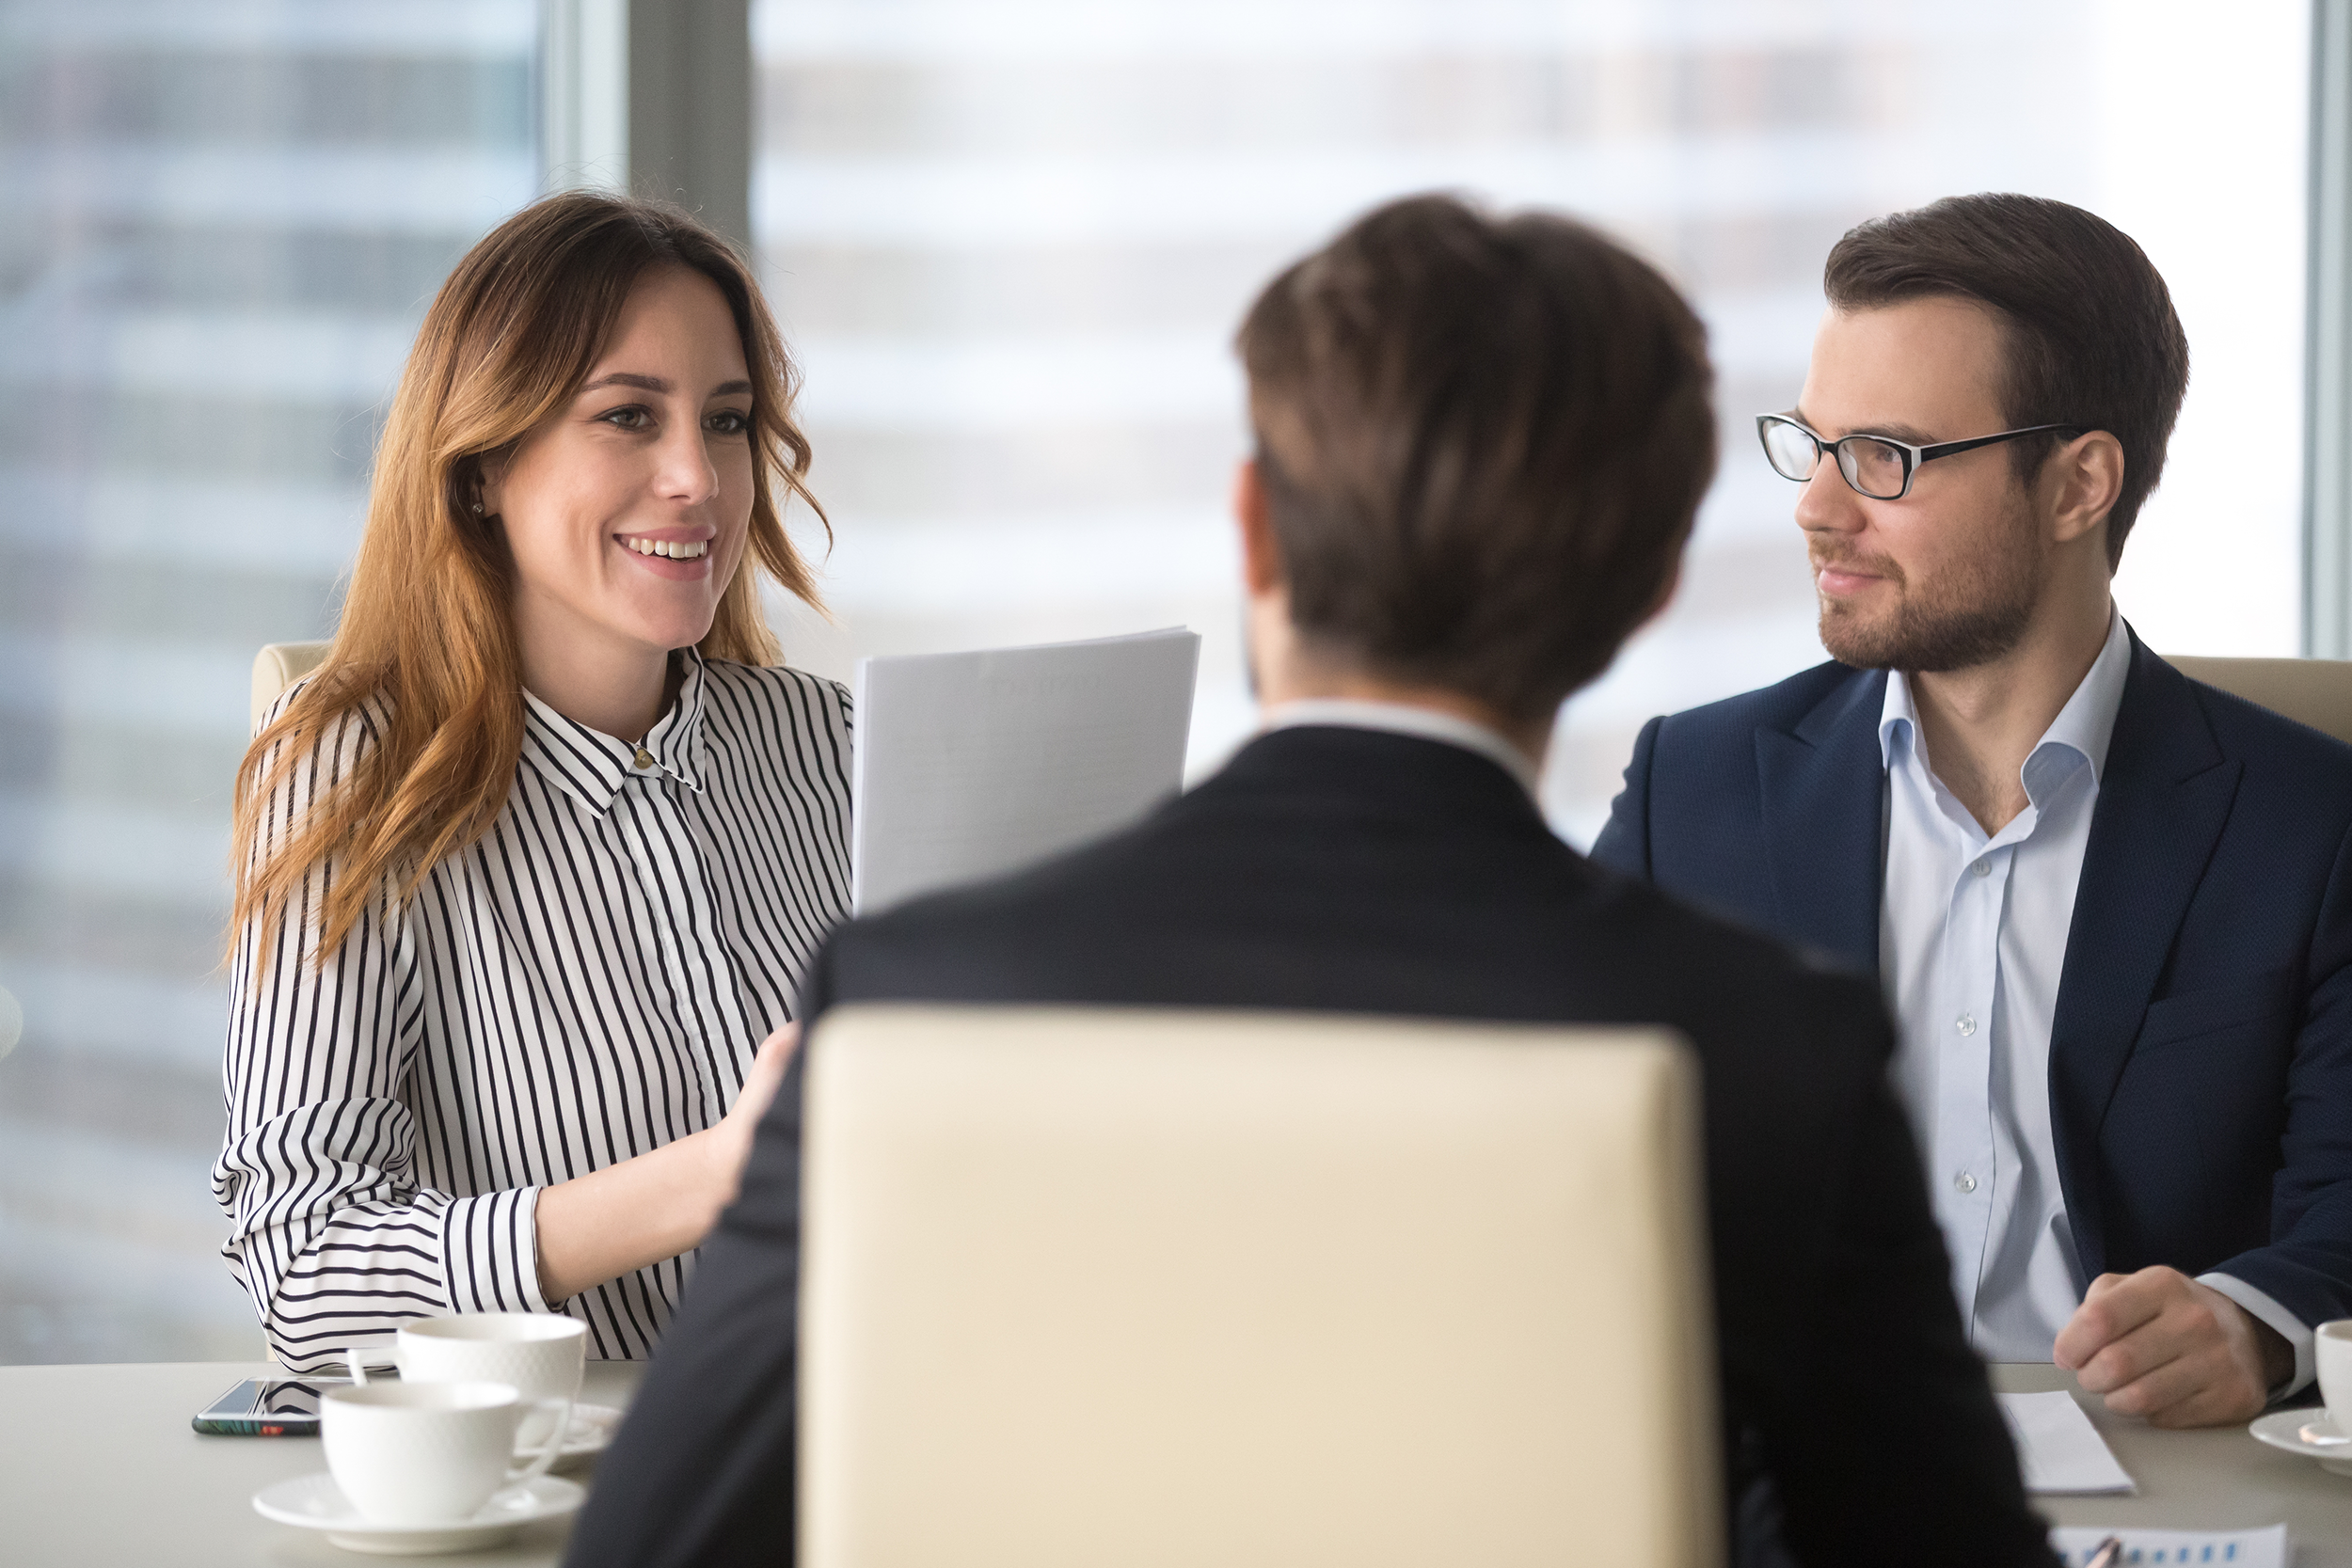 A woman delivers her companies value proposition in a meeting with two businessmen